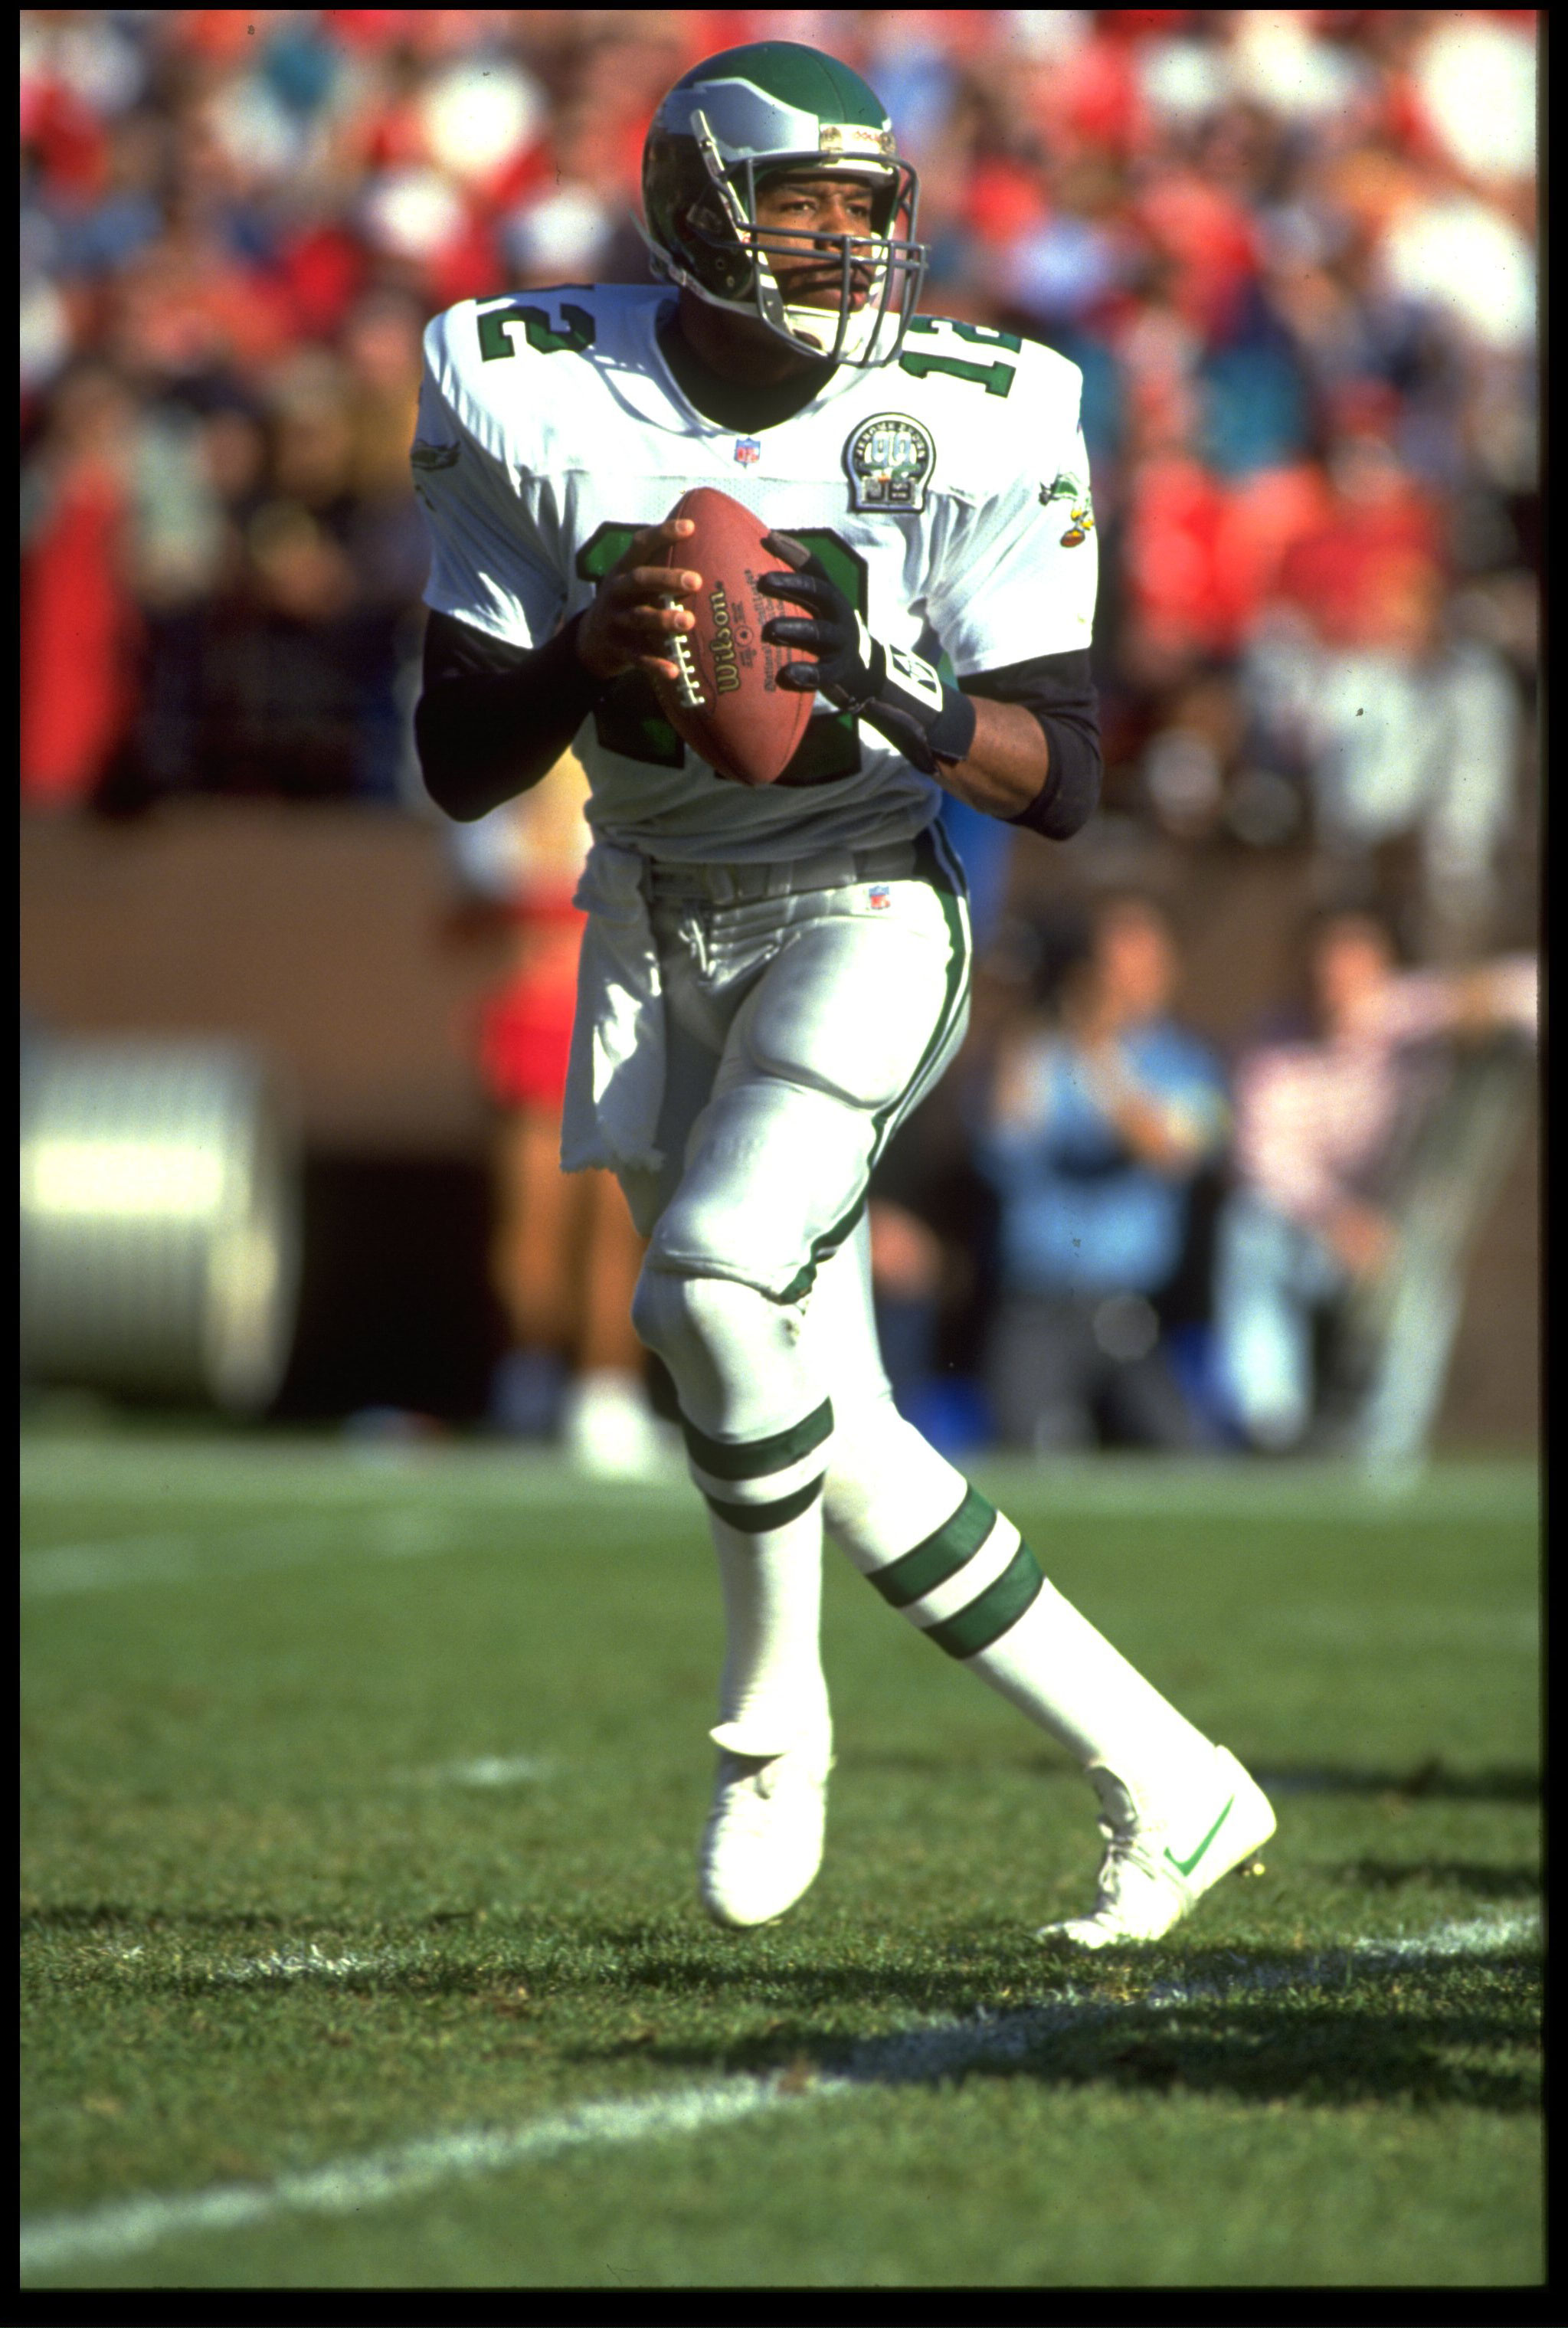 29 Nov 1992: PHILADELPHIA EAGLES QUARTERBACK RANDALL CUNNINGHAM DROPS BACK TO PASS DURING A 20-14 LOSS TO THE SAN FRANCISCO 49ERS AT CANDLESTICK PARK IN SAN FRANCISCO, CALIFORNIA